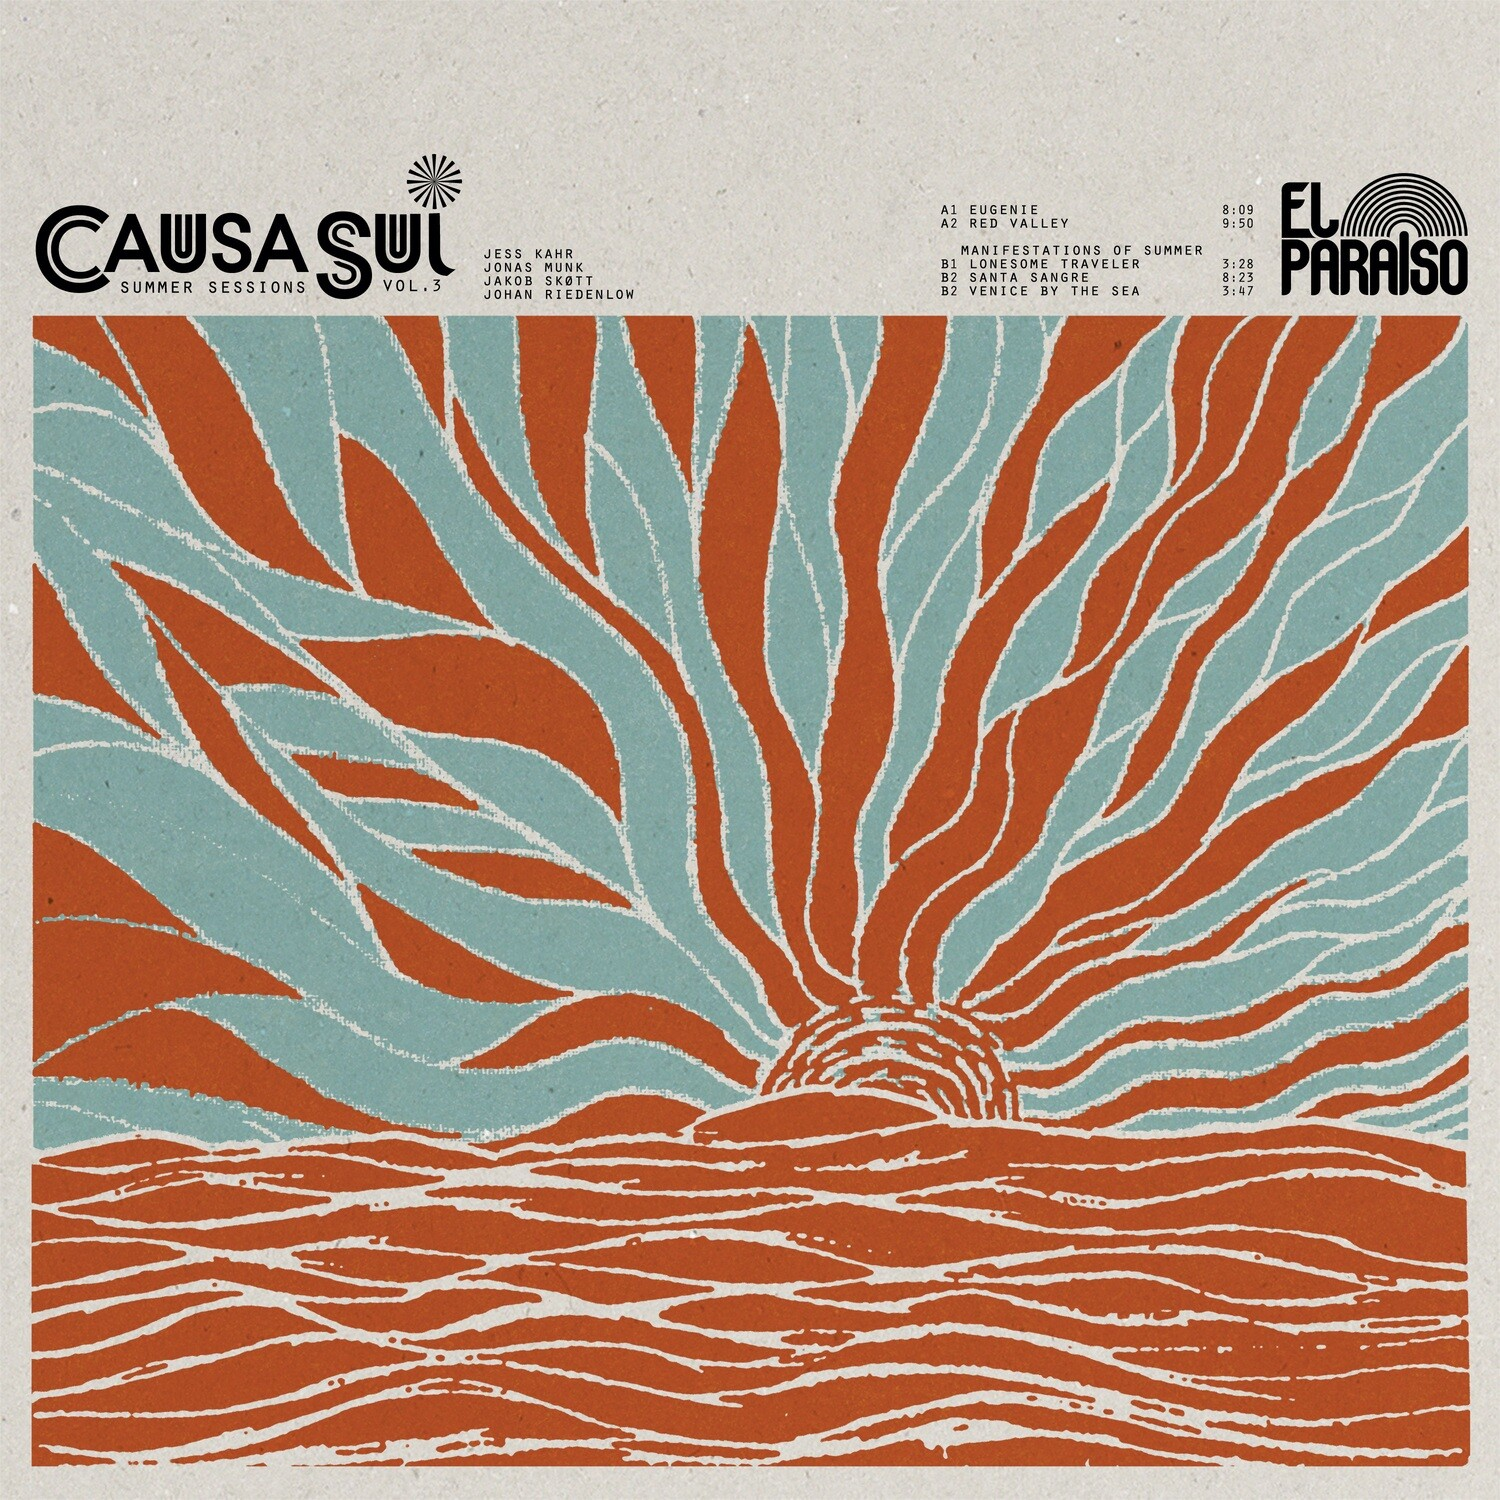 Causa Sui - Summer Sessions Vol3